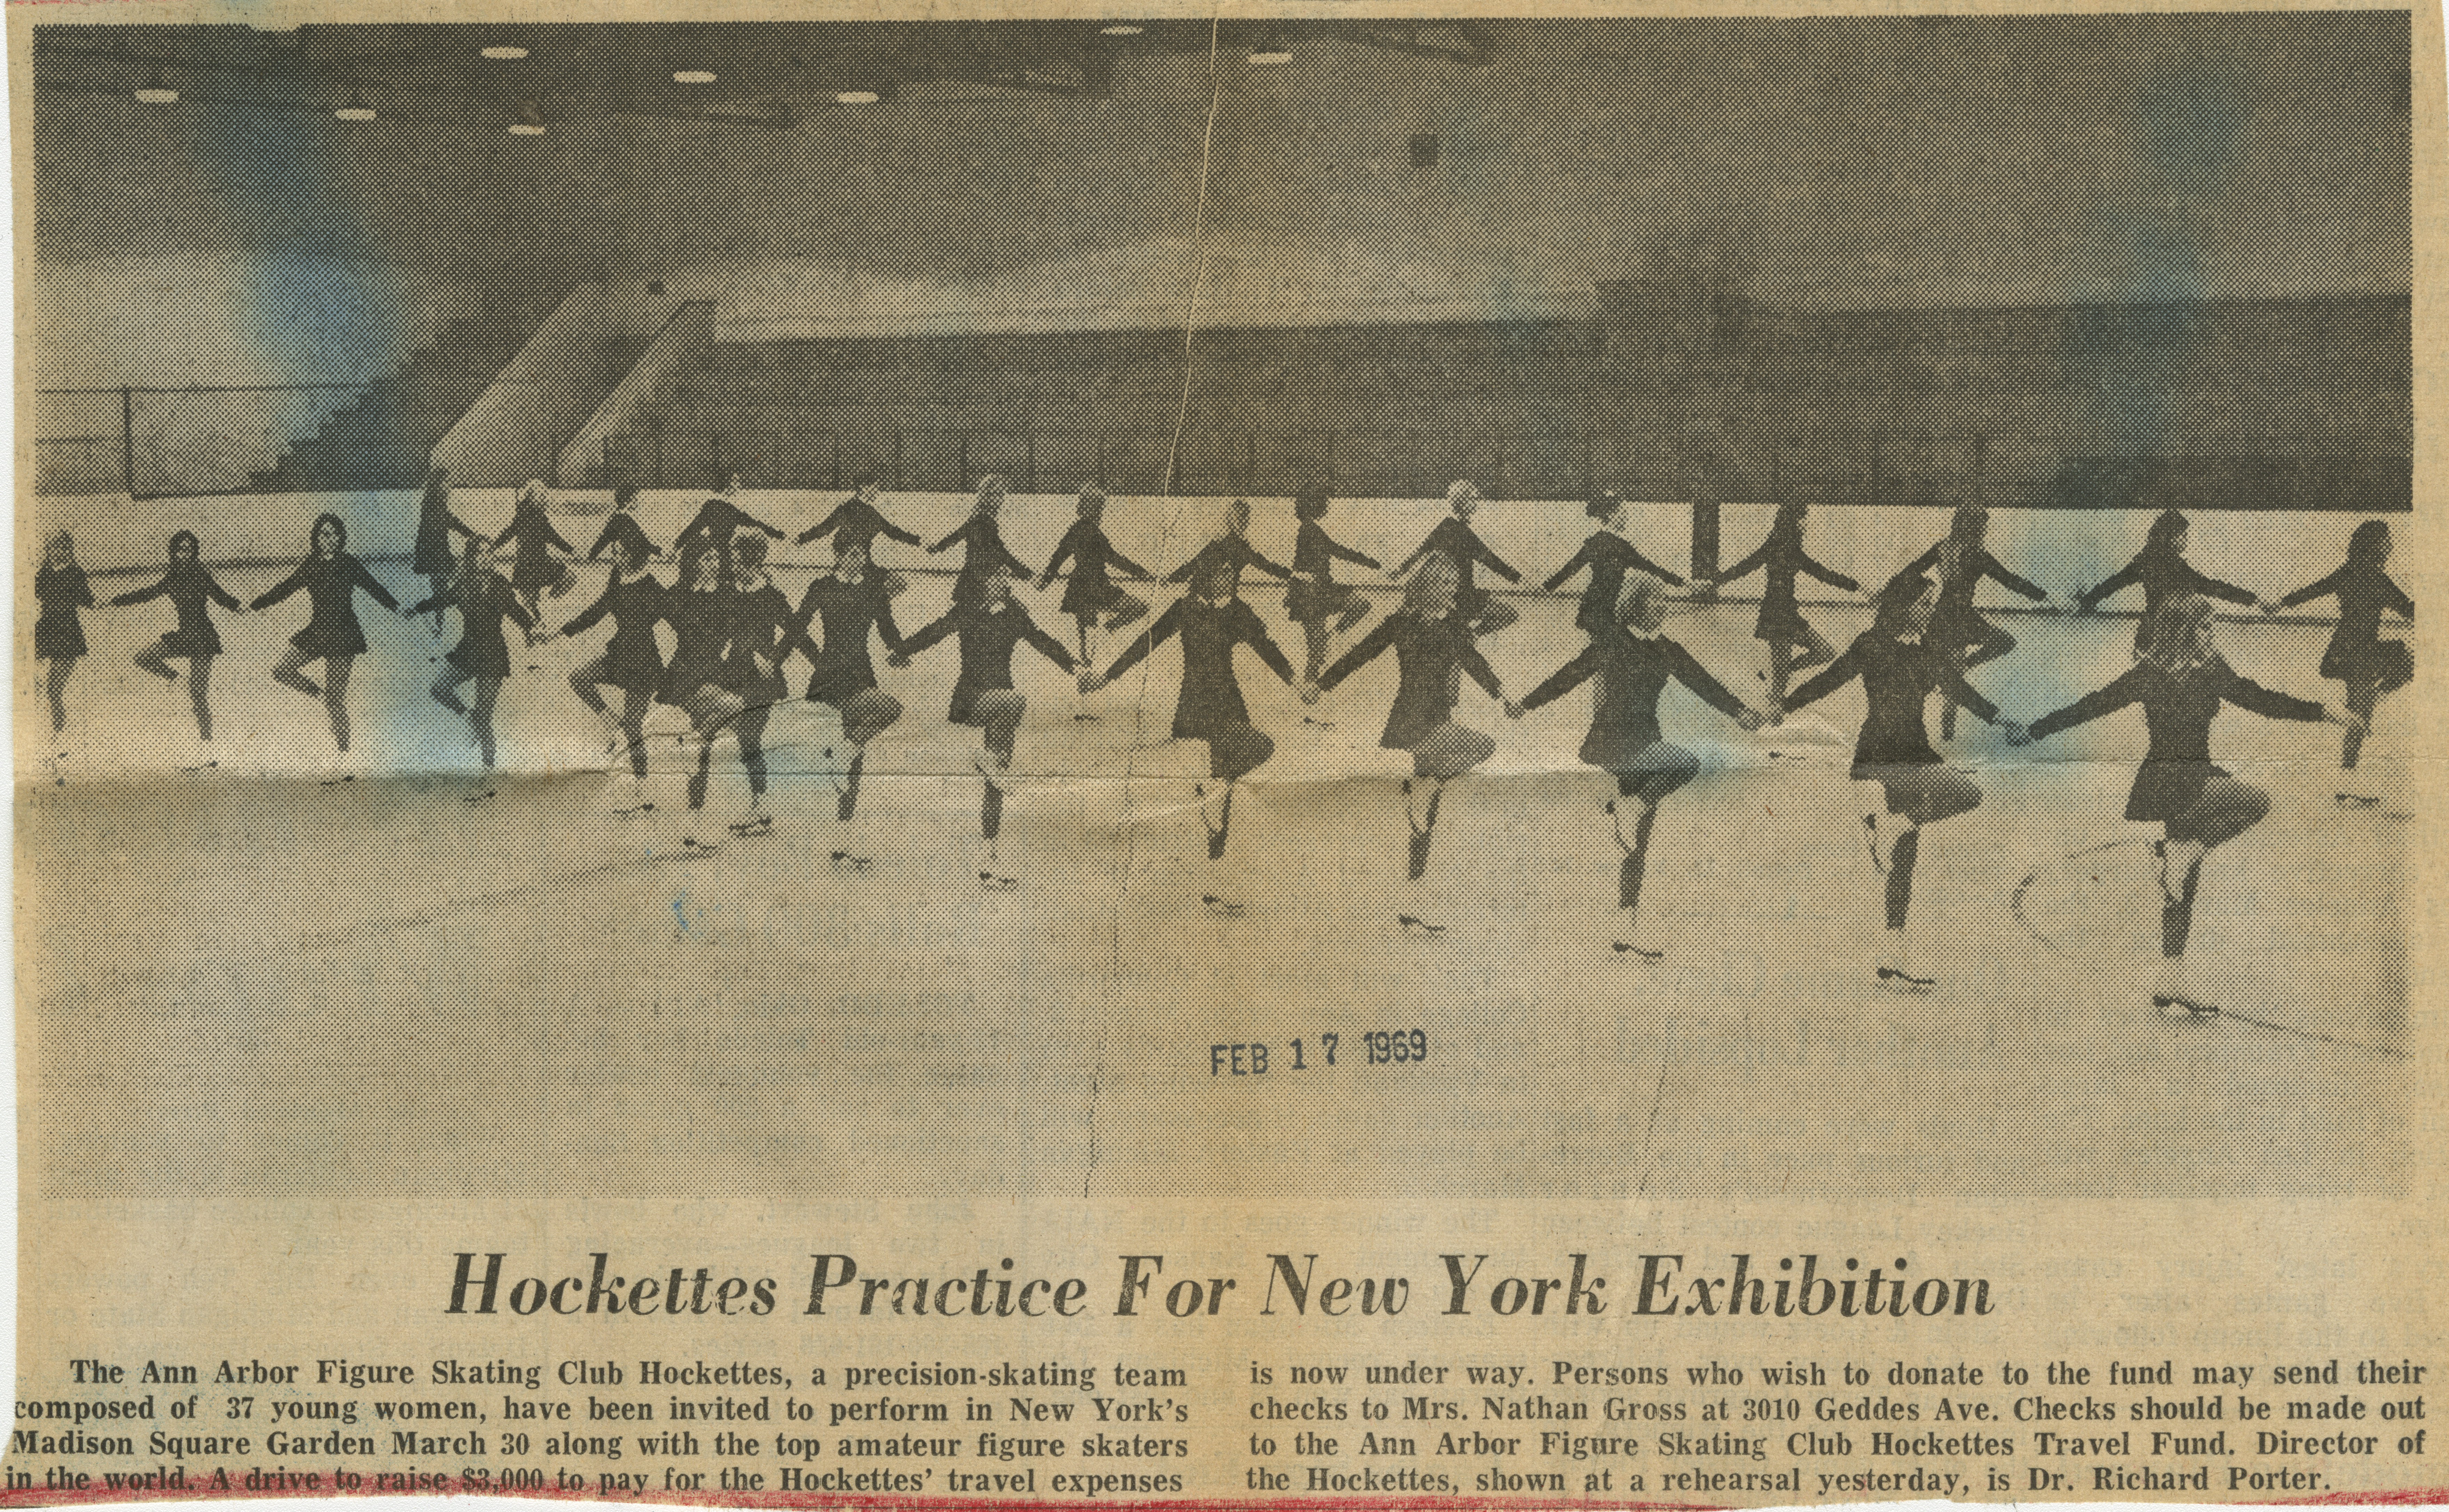 Hockettes Practice For New York Exhibition image